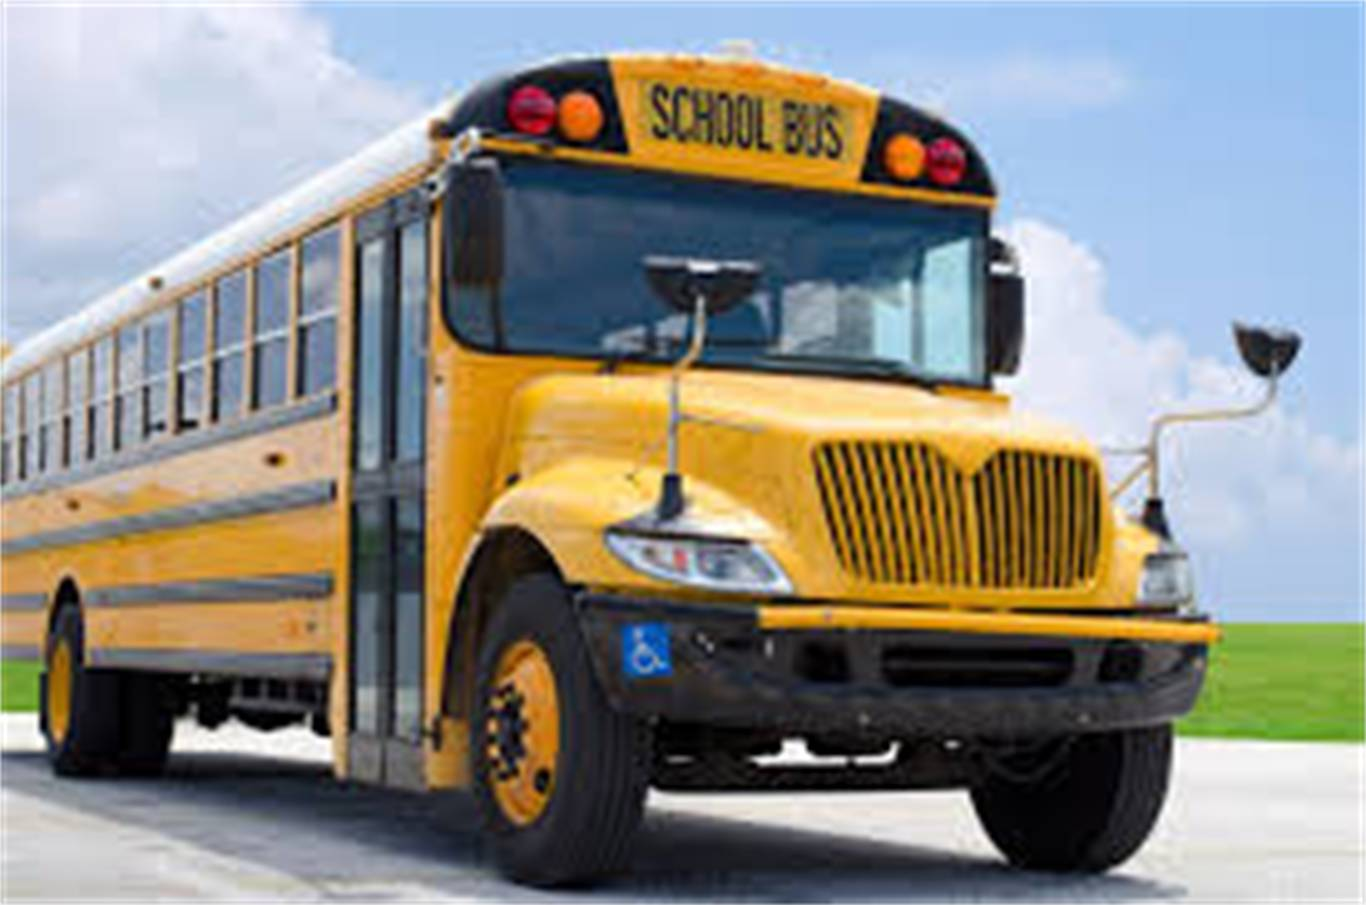 School Bus Cancellation Link and Bus Number Link